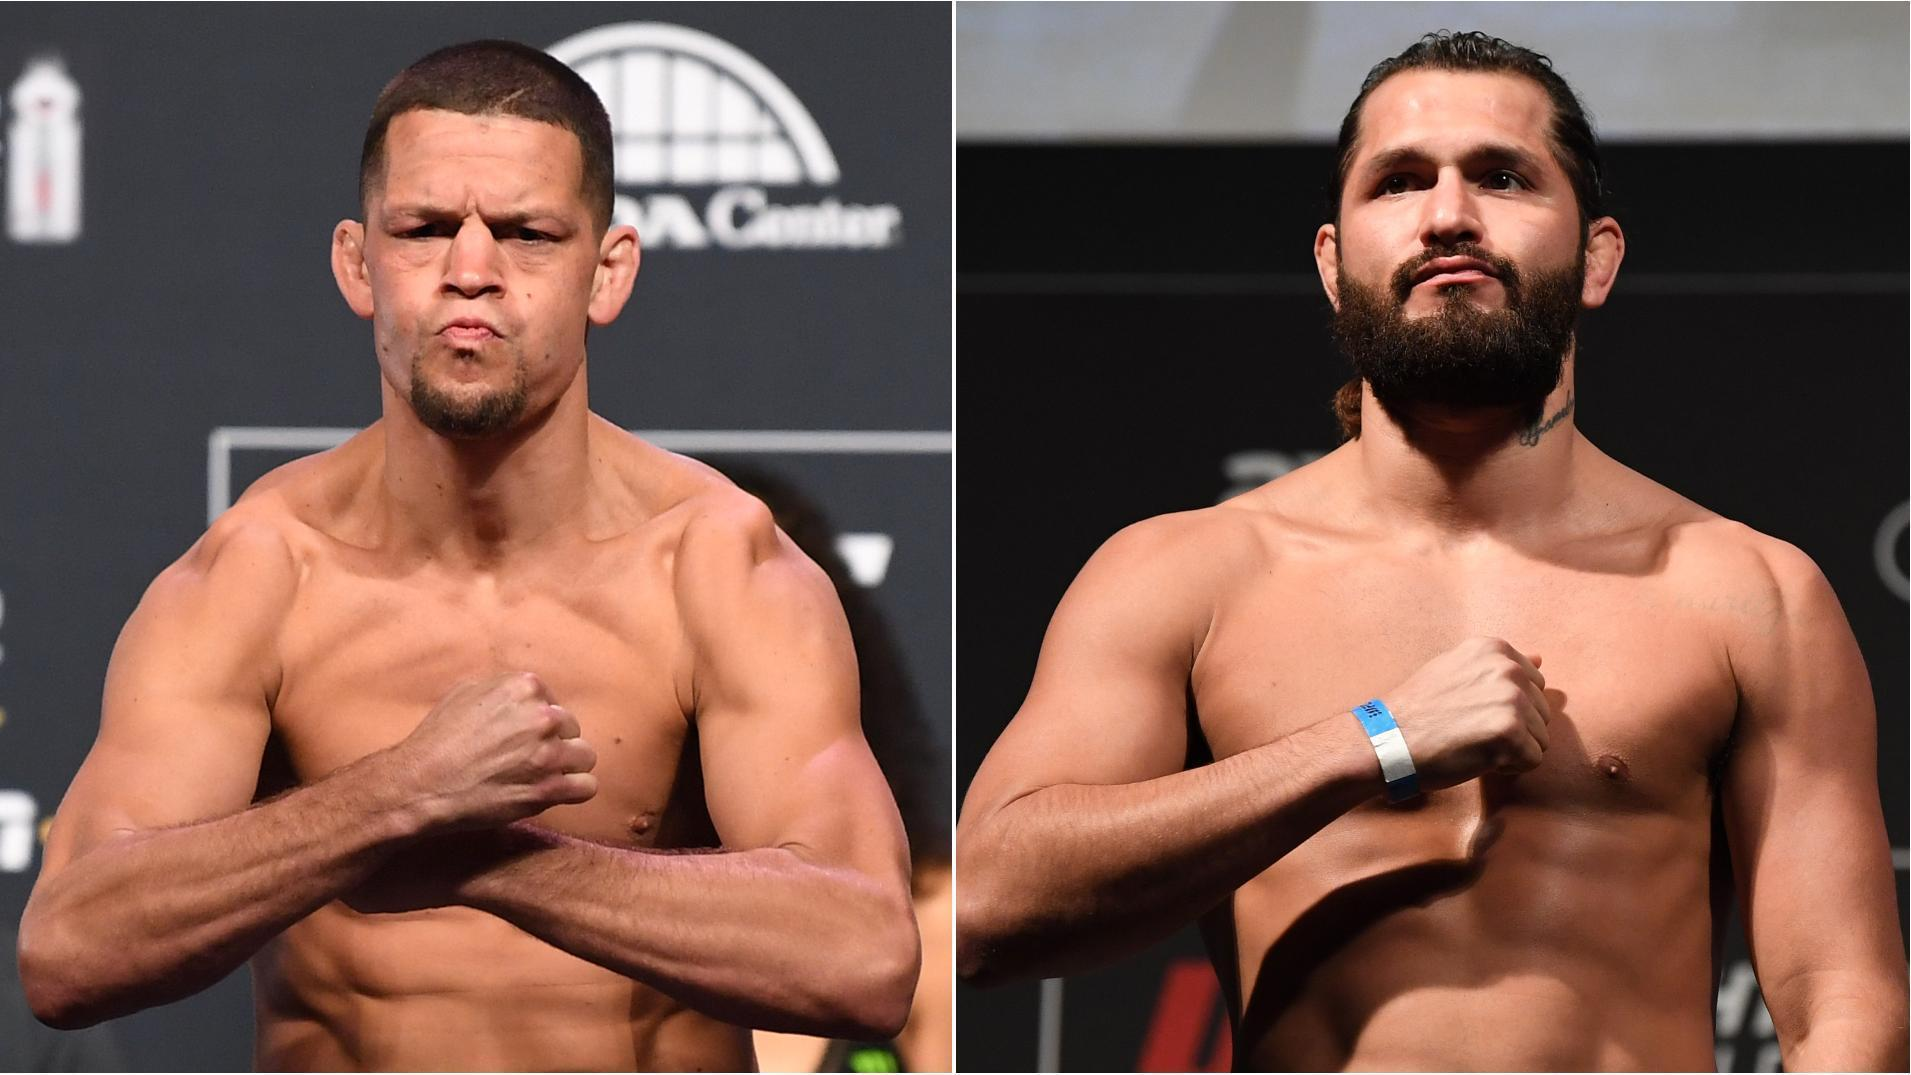 Diaz-Masvidal will bring the electricity to MSG